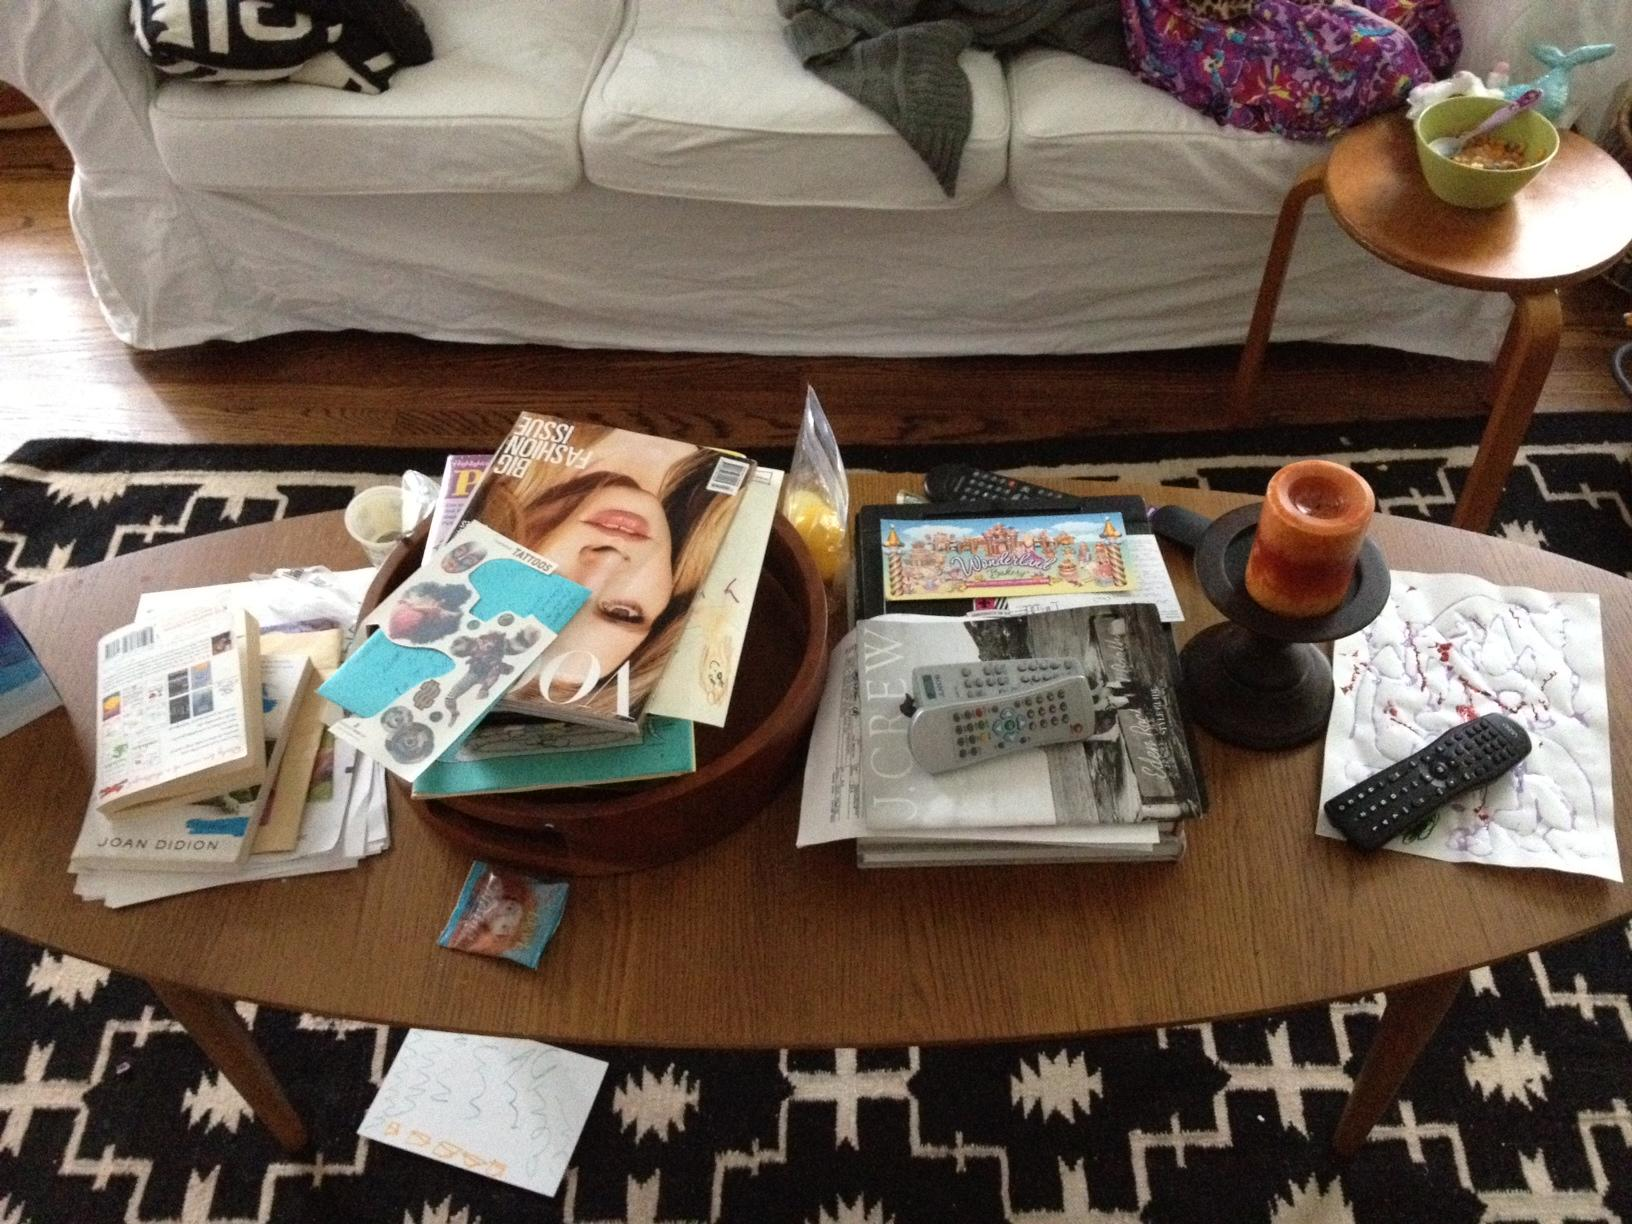 Image result for living room table messy